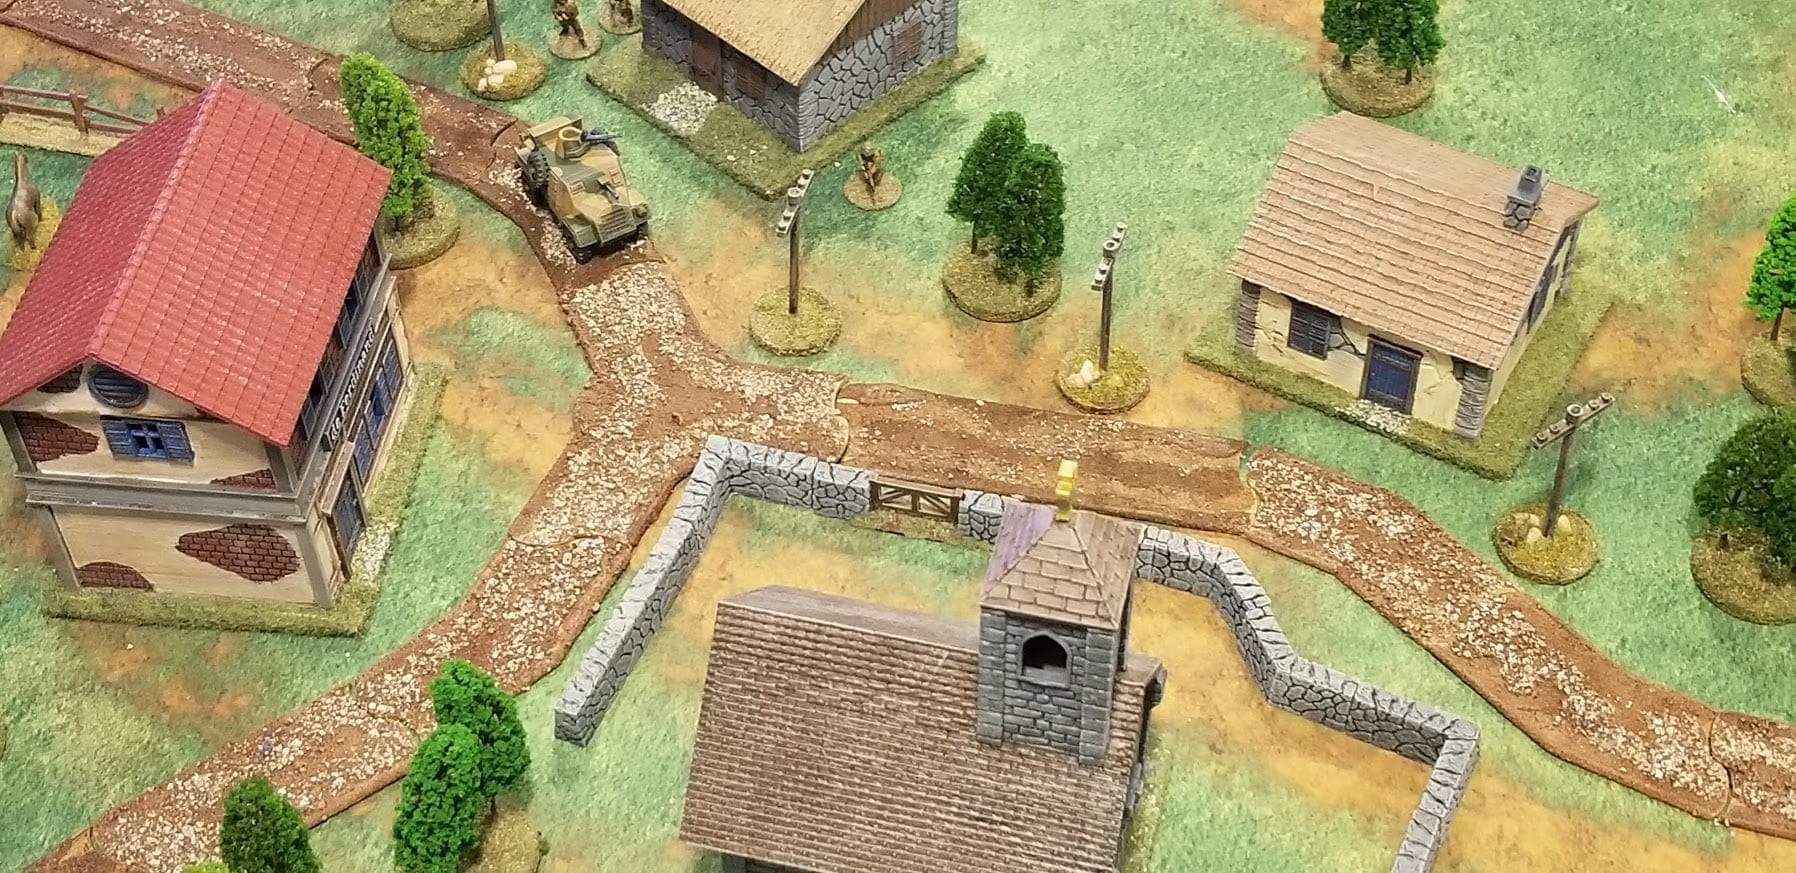 Heading down the Wargaming Roadway… printing 28mm scale wargaming roads